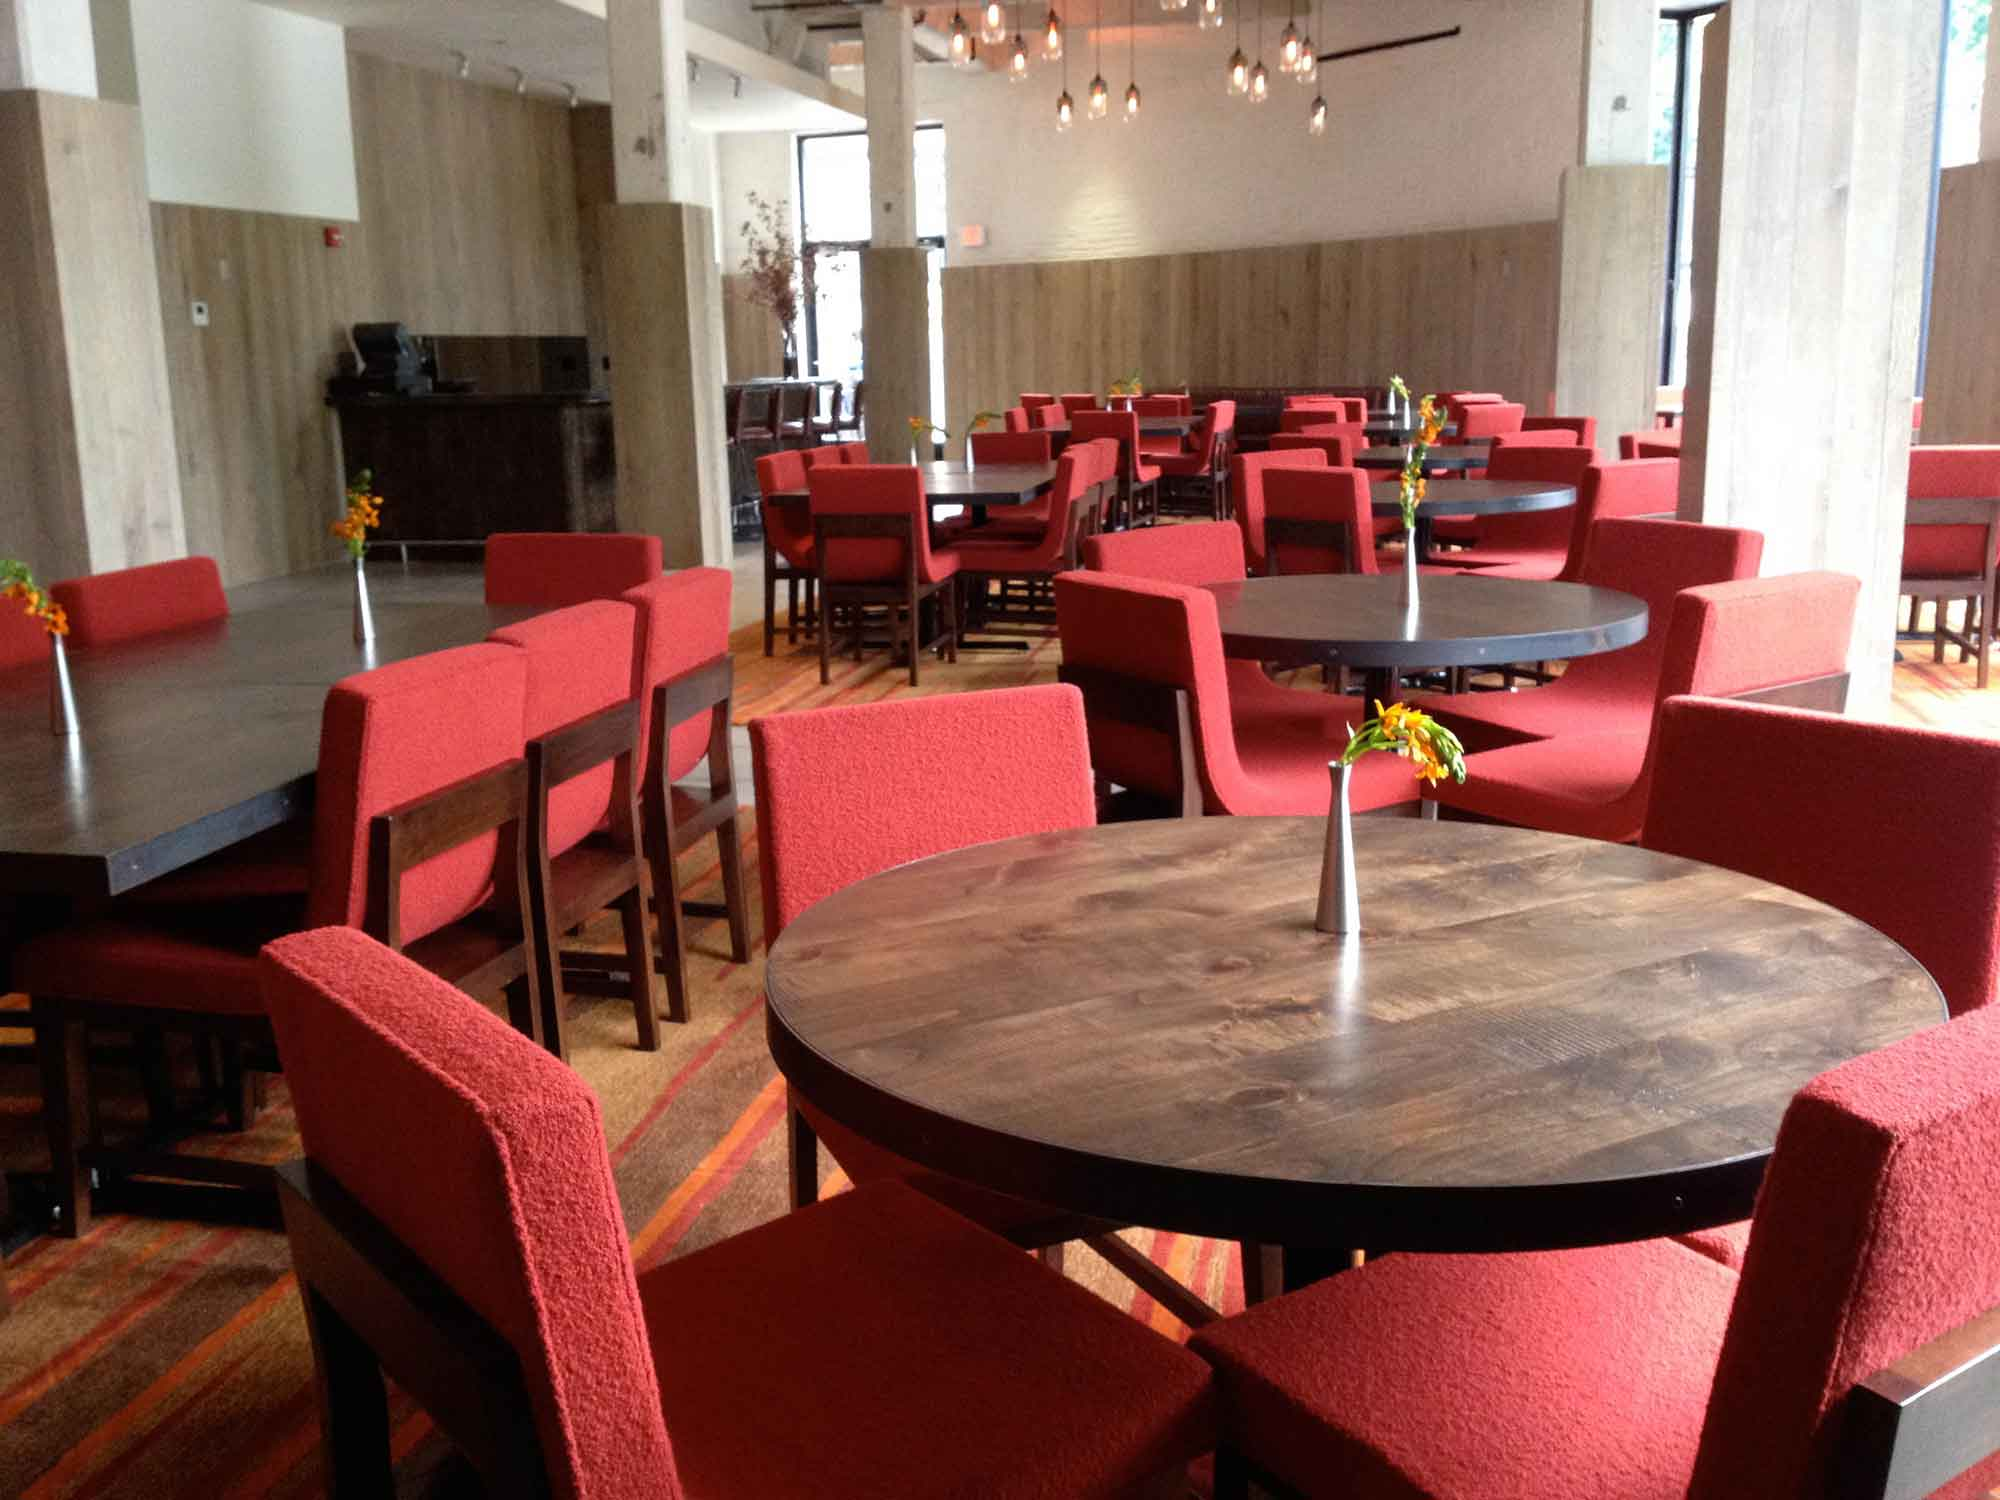 roundhouse-dining-tables-13673-2.jpg